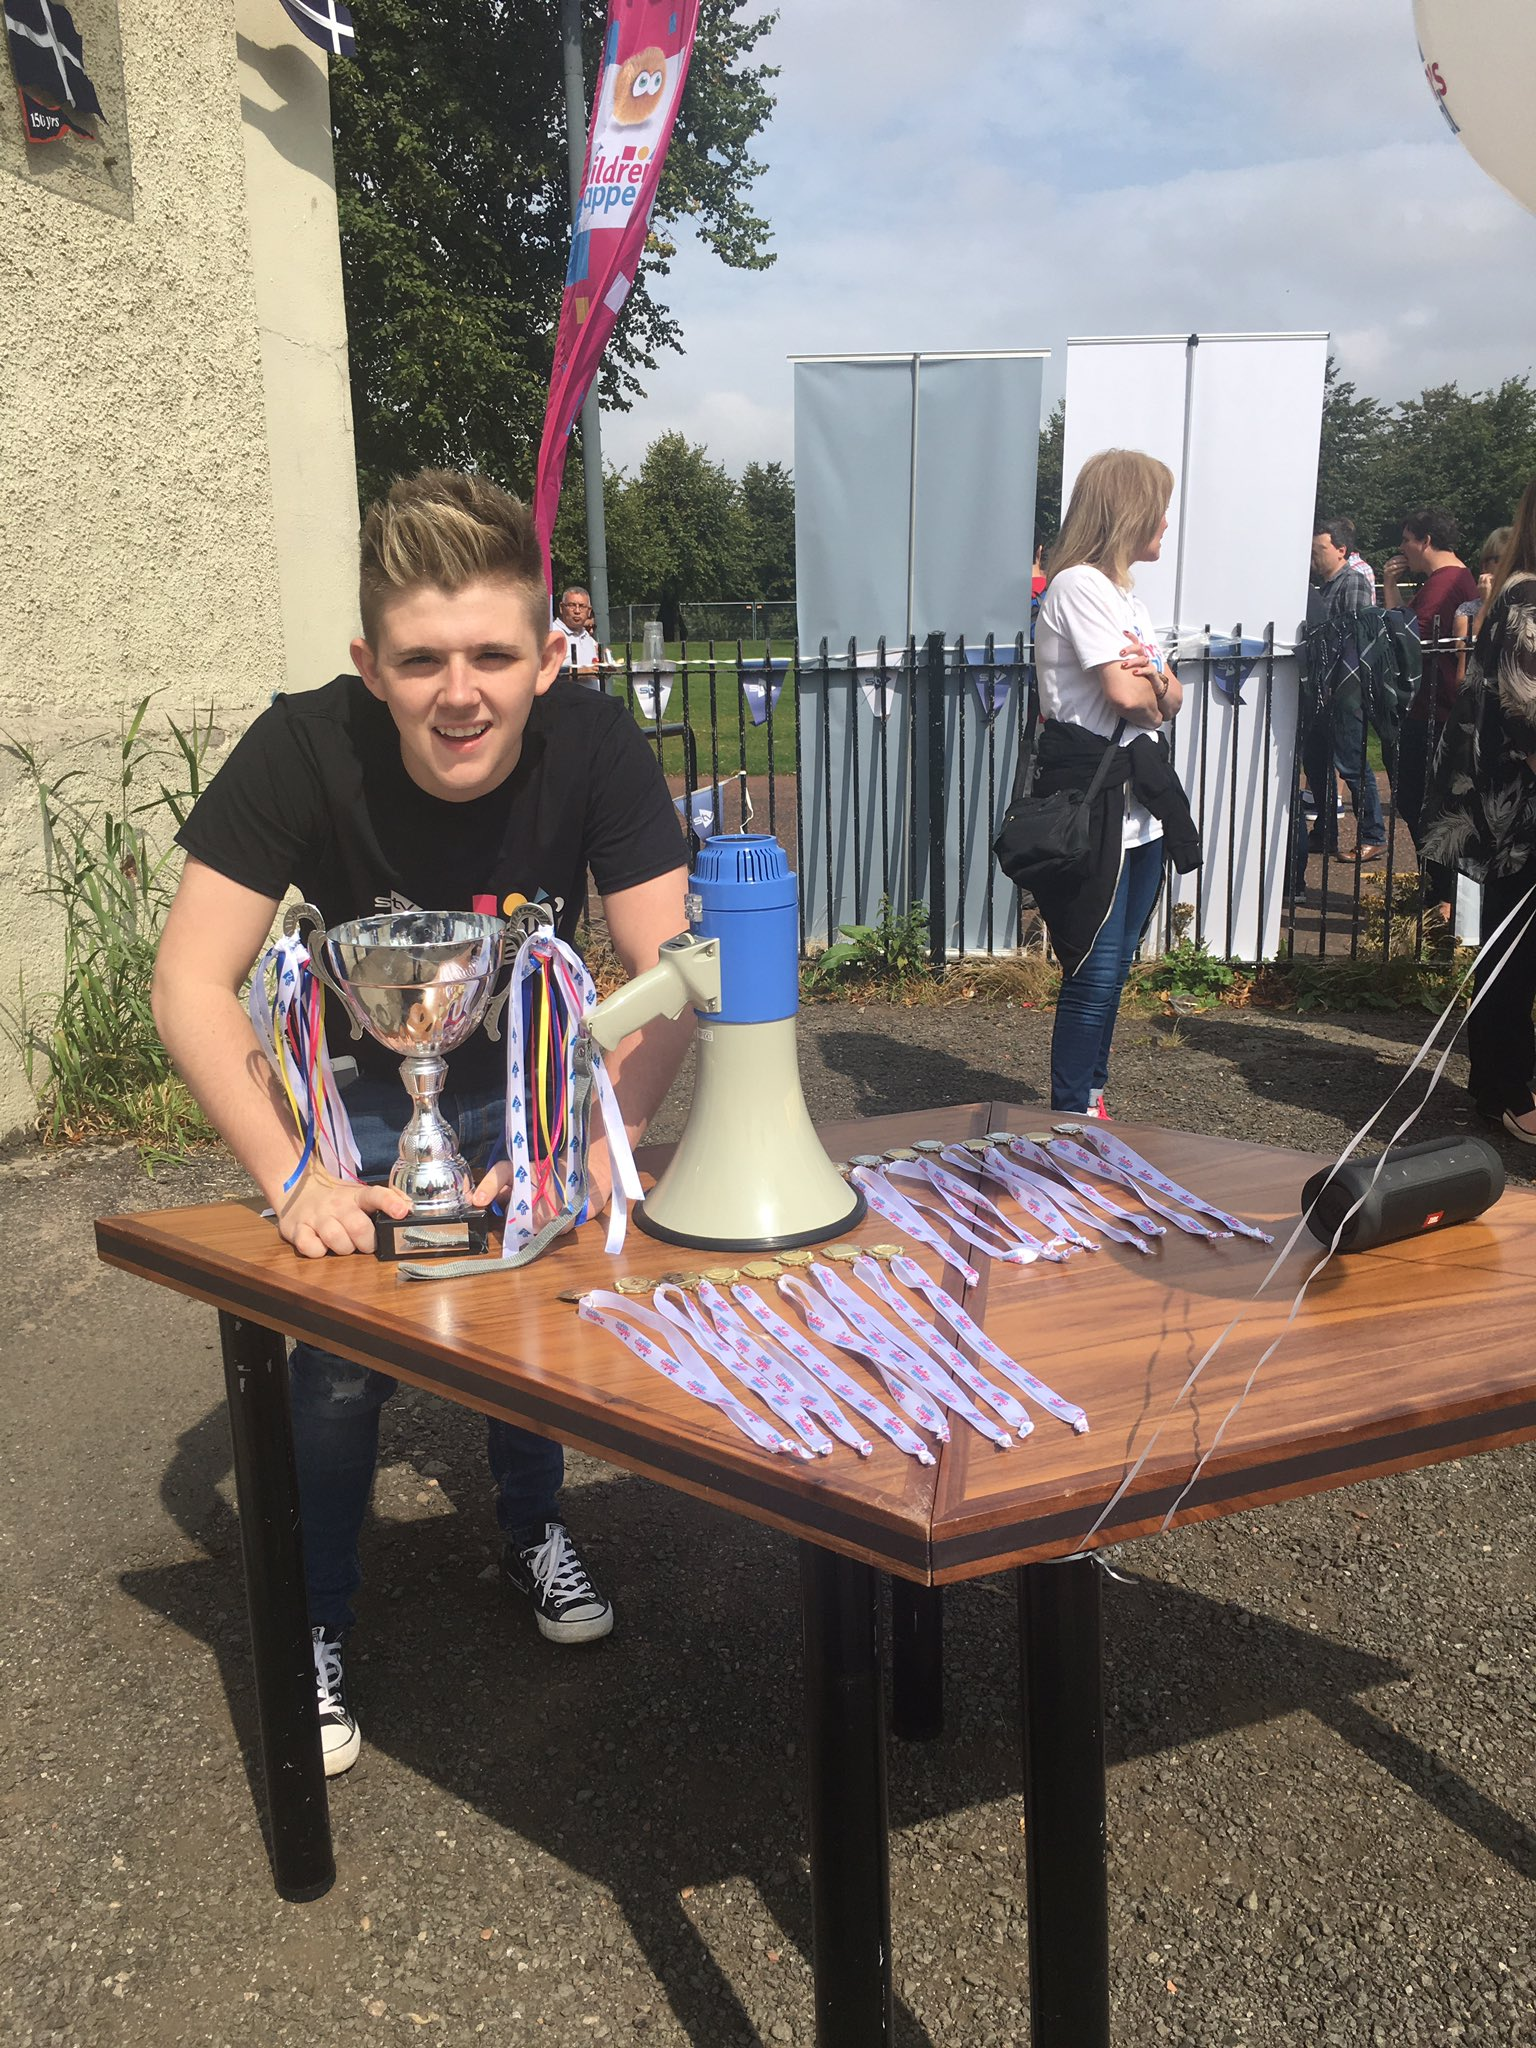 RT @CarronMunro: @nickymcdonald1 getting ready to present the cup but who won? #teamstv or #teamwholesaledomestic @STVAppeal #rowing🏆 https…